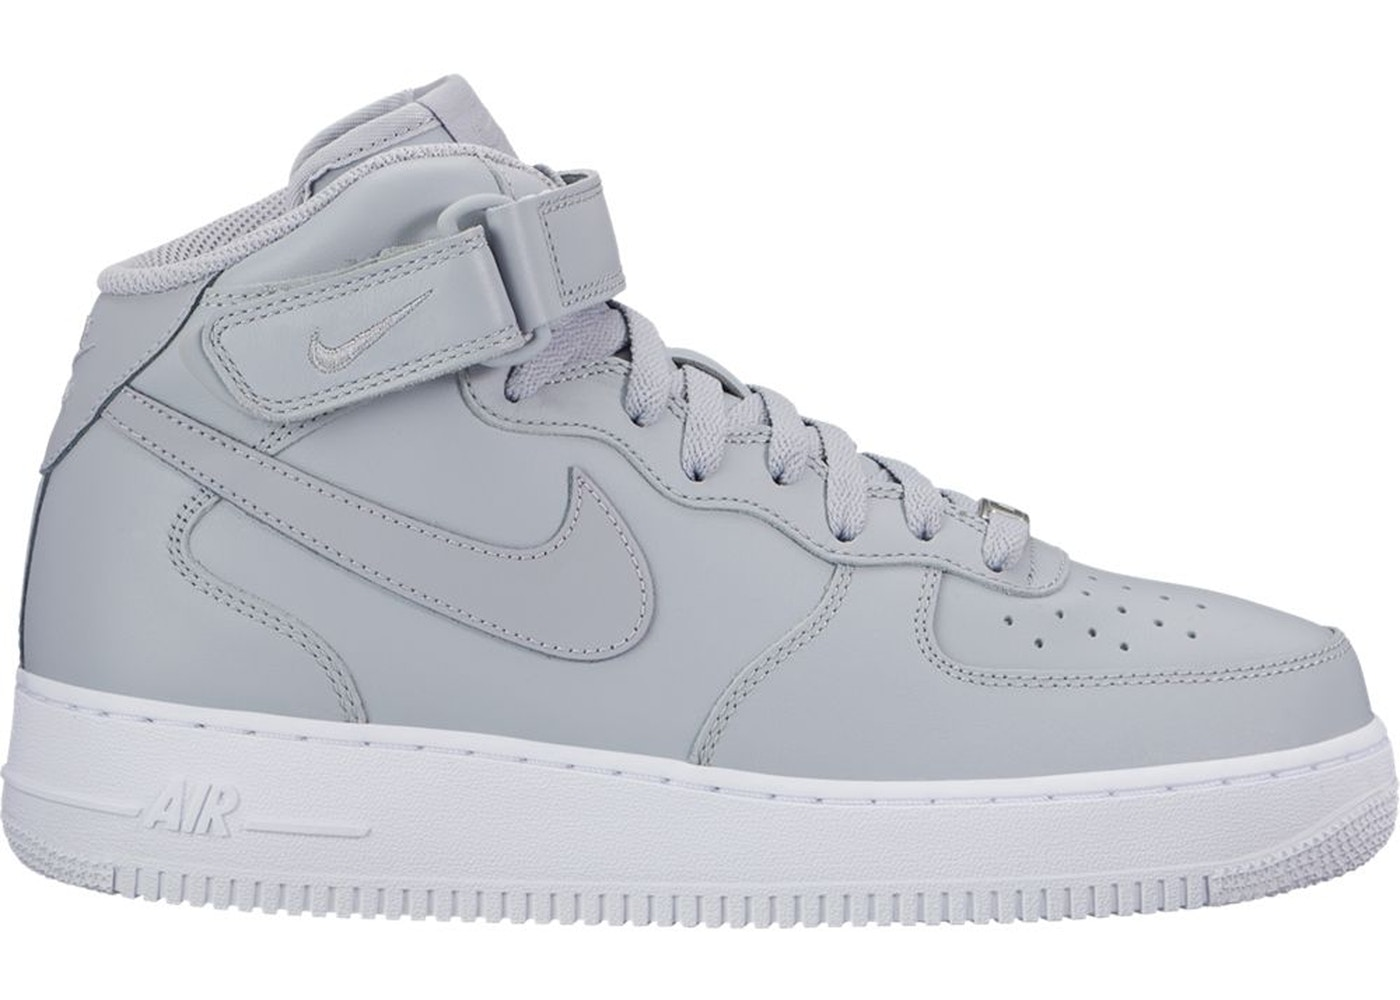 reputable site 72671 60f62 Air Force 1 Mid Wolf Grey White (2007) - 315123-046